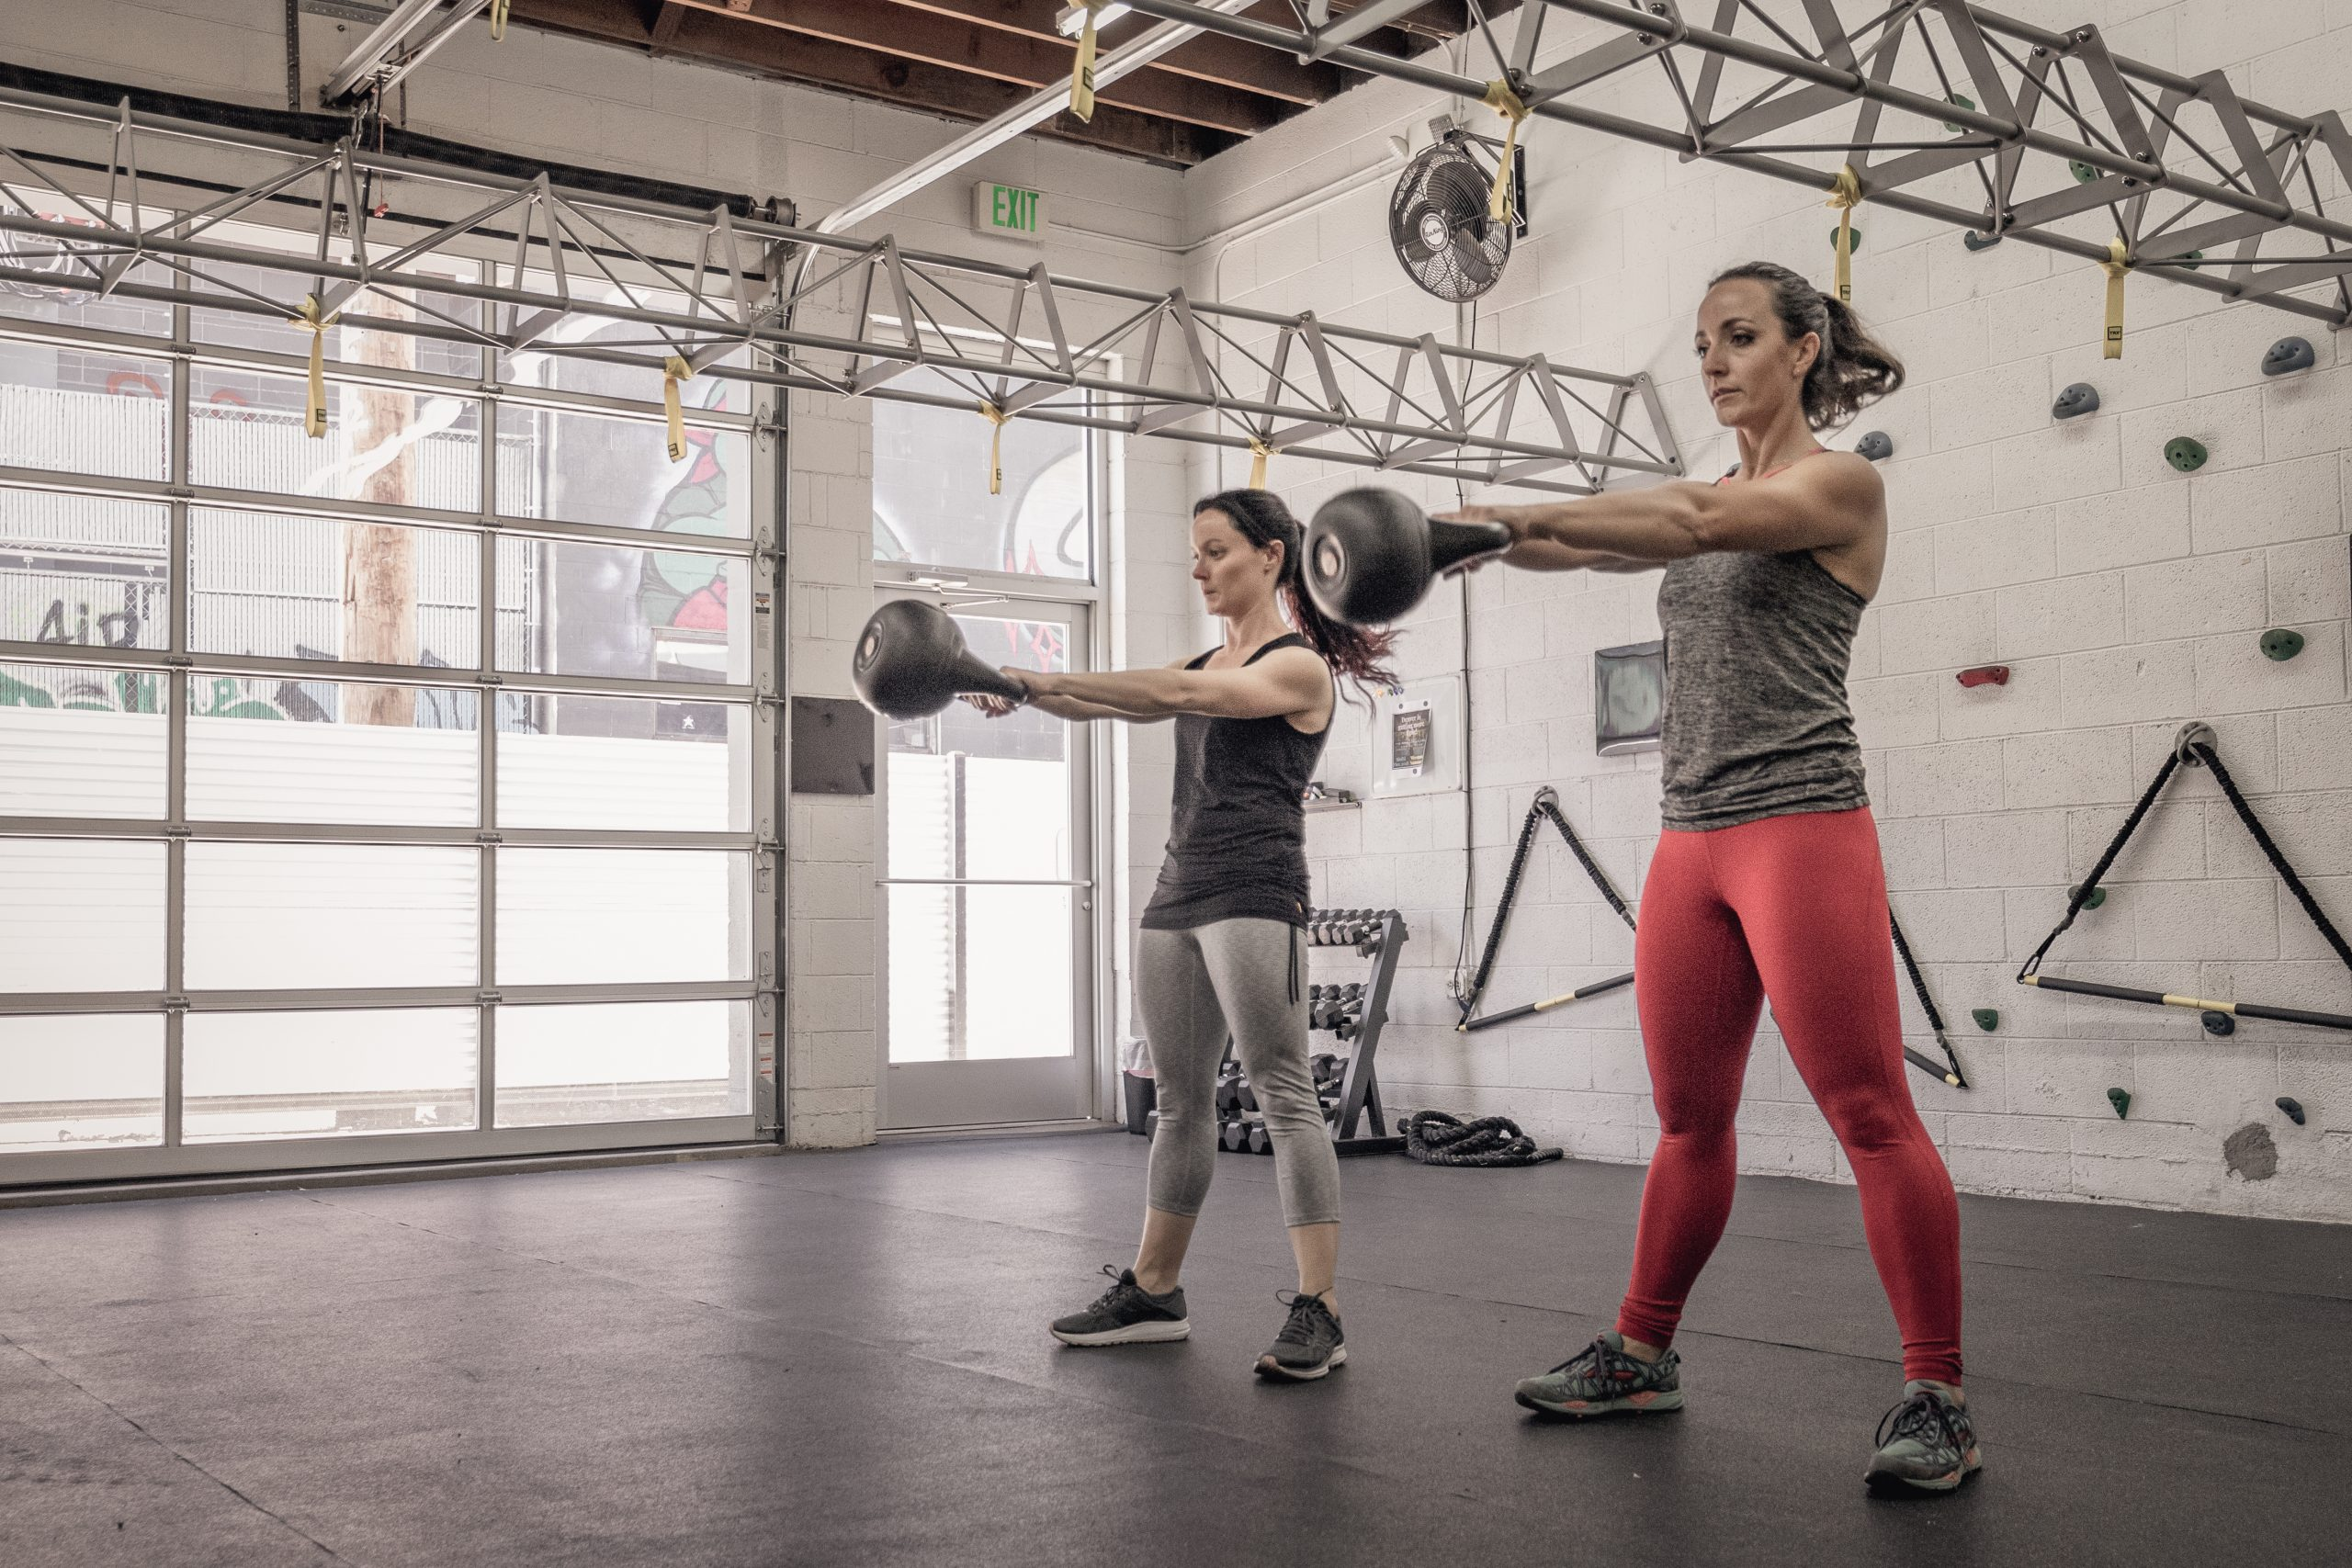 Benefits of strength training for mental health